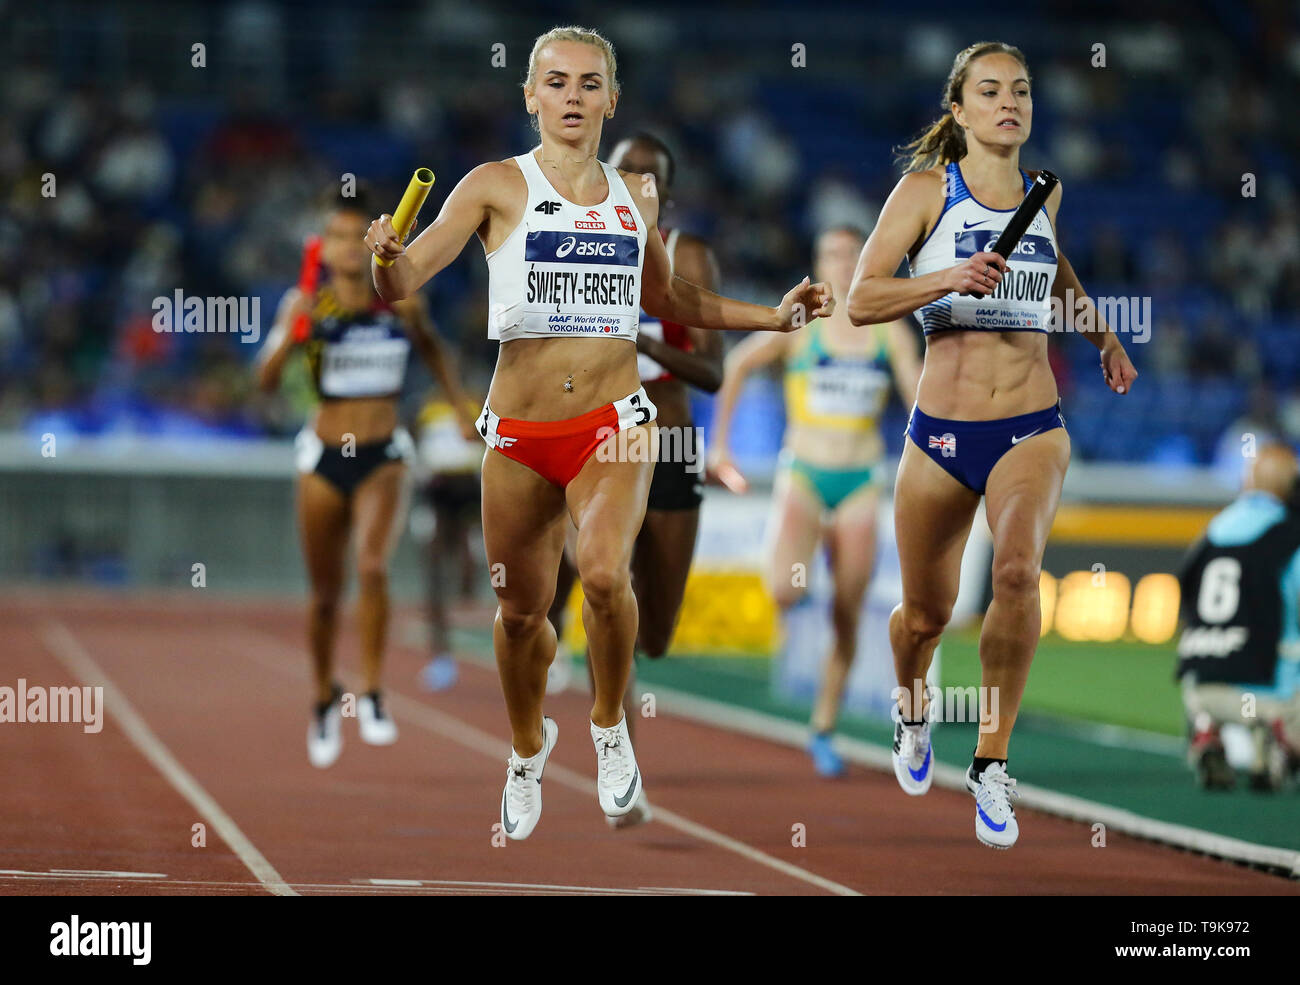 YOKOHAMA, JAPAN - MAY 10: Justin Swiety-Ersetic of Poland and Emily Diamond of Great Britain and Northern Ireland in the women's 4x400m relay during Day 1 of the 2019 IAAF World Relay Championships at the Nissan Stadium on Saturday May 11, 2019 in Yokohama, Japan. (Photo by Roger Sedres for the IAAF) - Stock Image